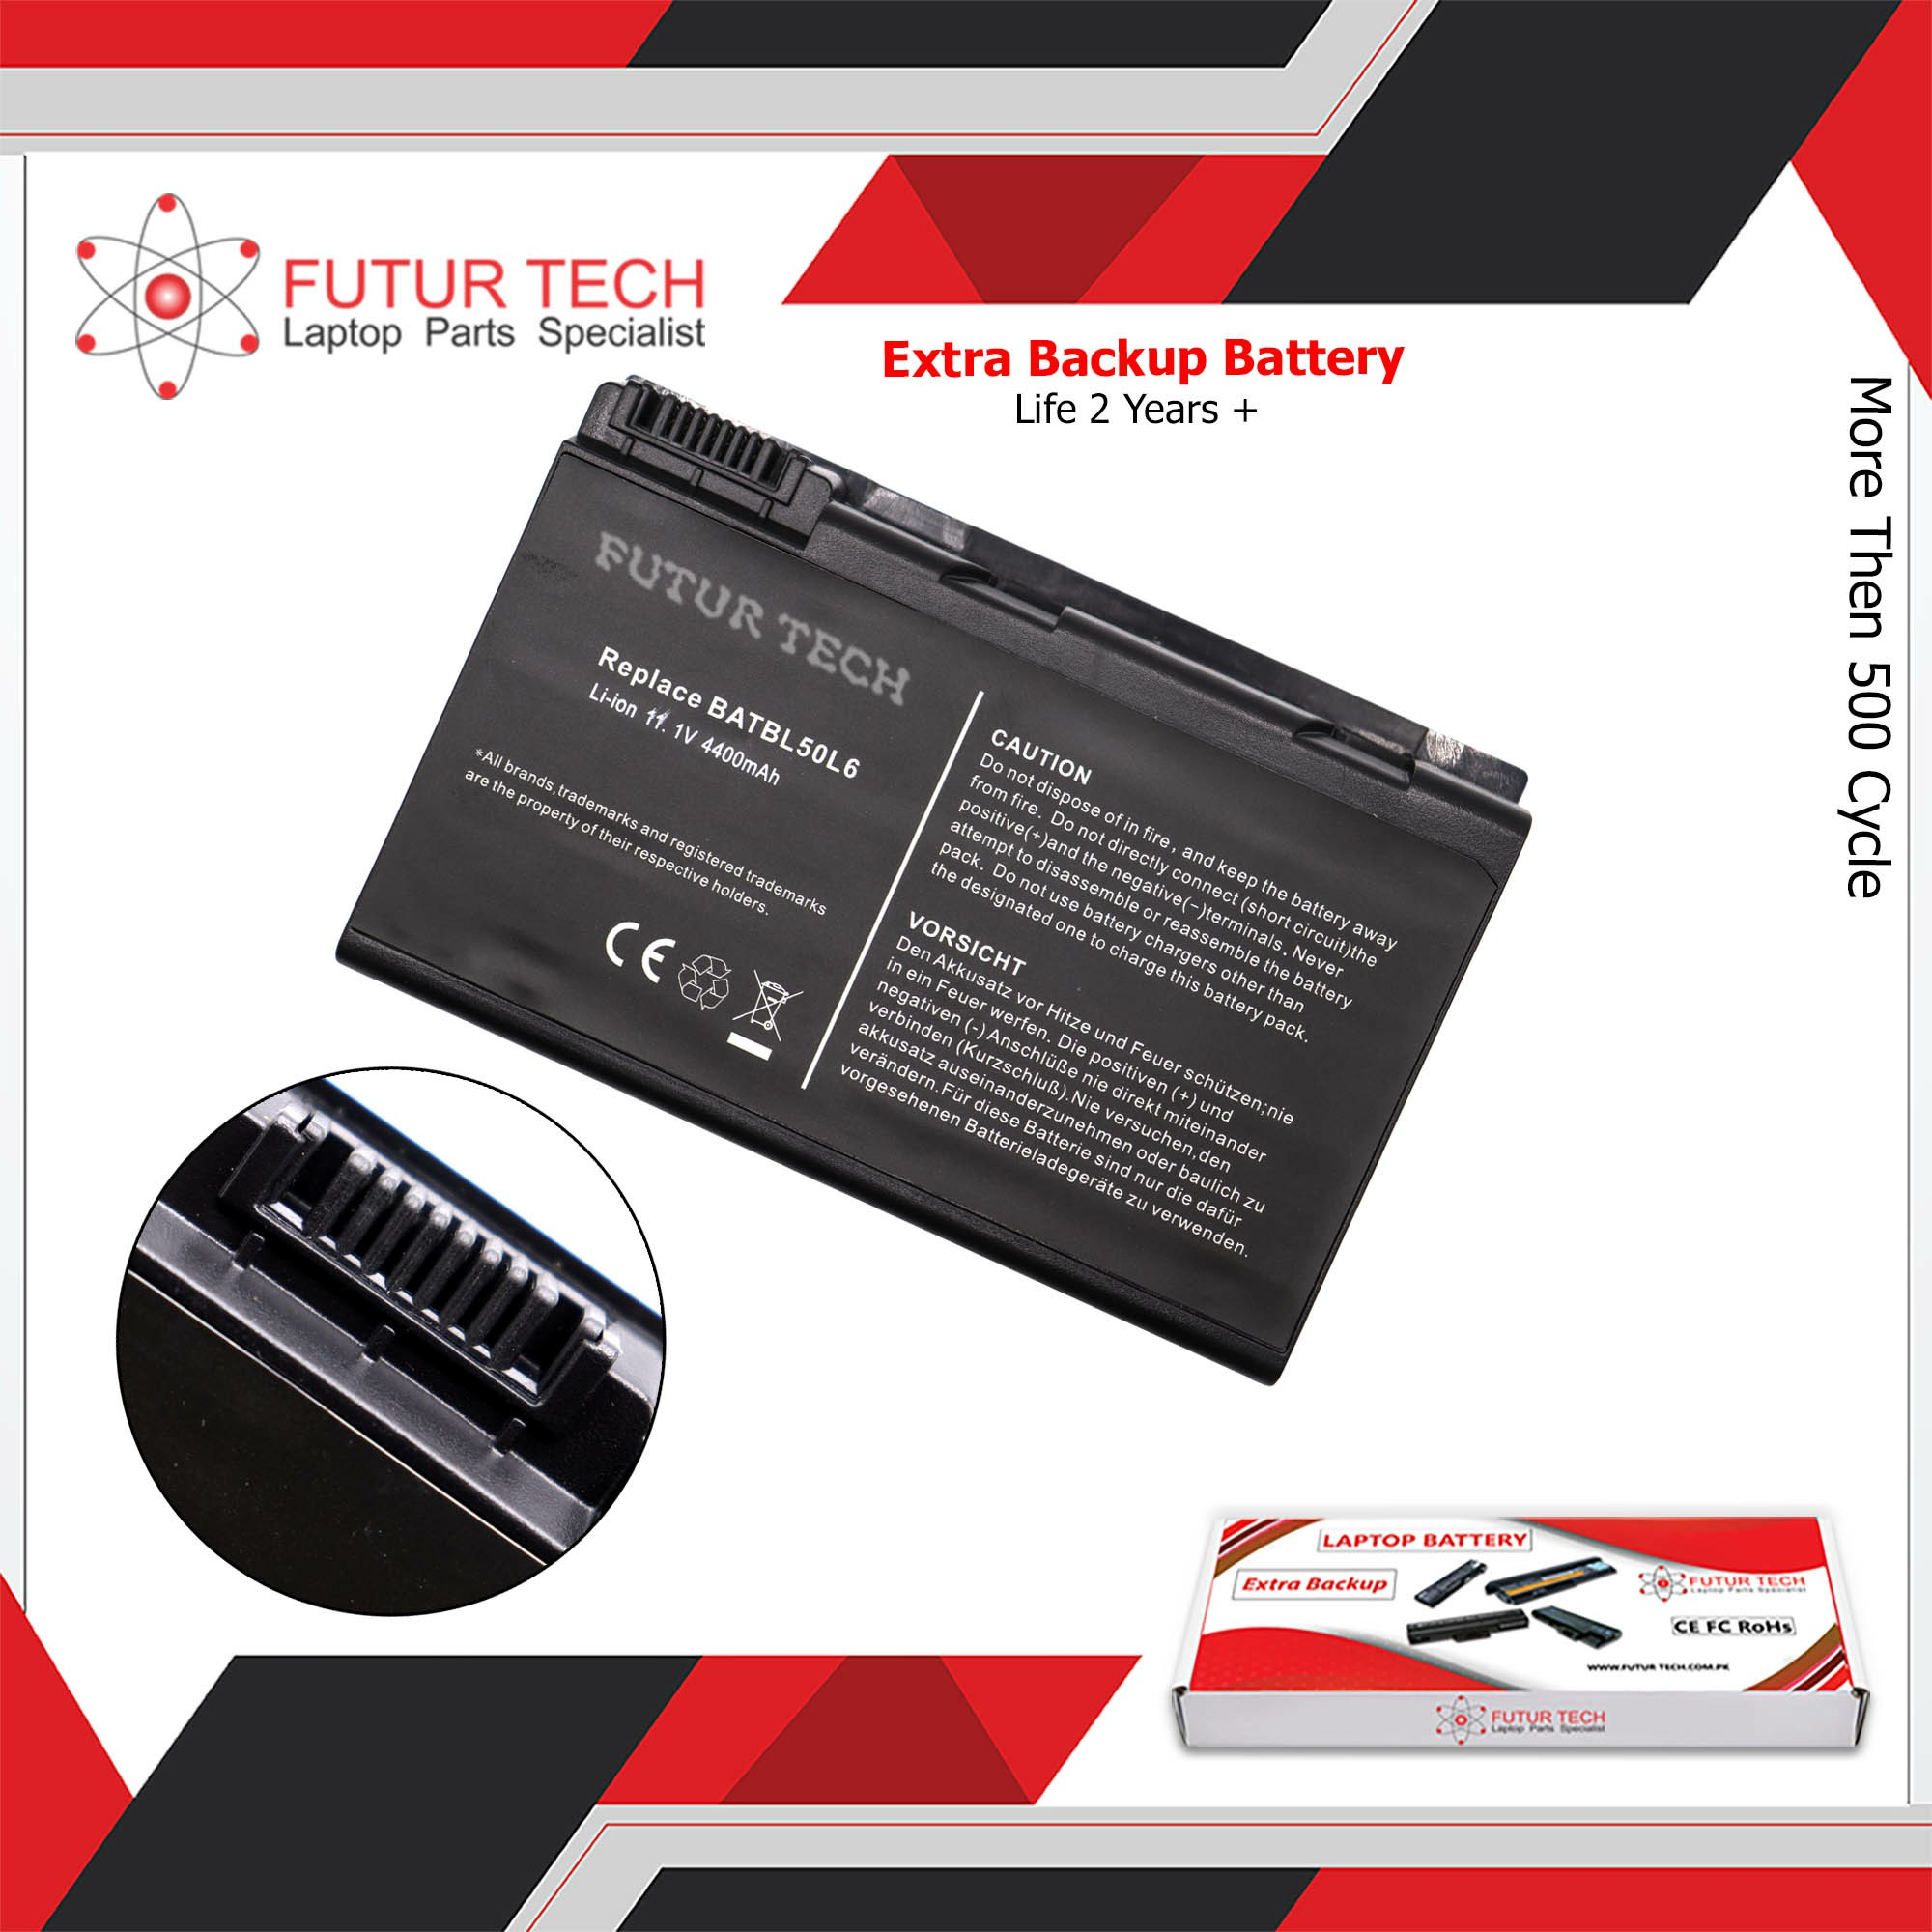 Laptop Battery best price in Karachi Battery Acer Travelmate 50L6/3600/3100 | 6 Cell